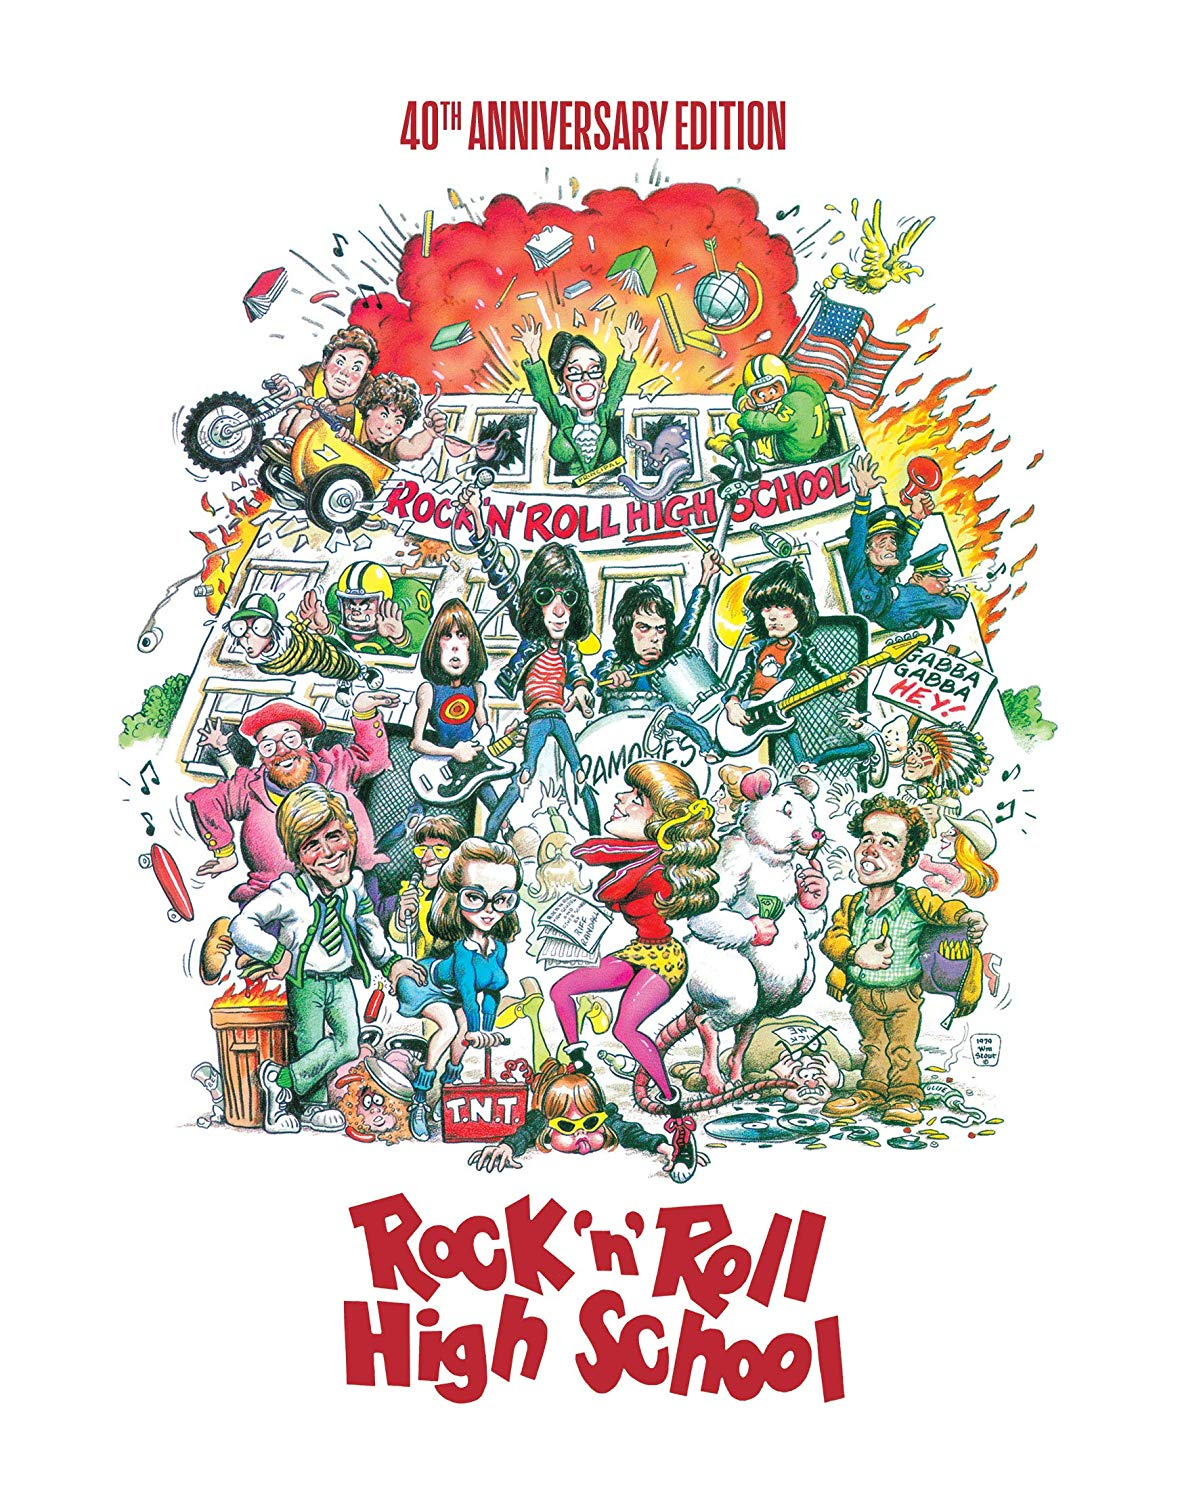 Rock 'N' Roll High School [Movie] - Rock 'N' Roll High School [40th Anniversary Edition Steelbook]